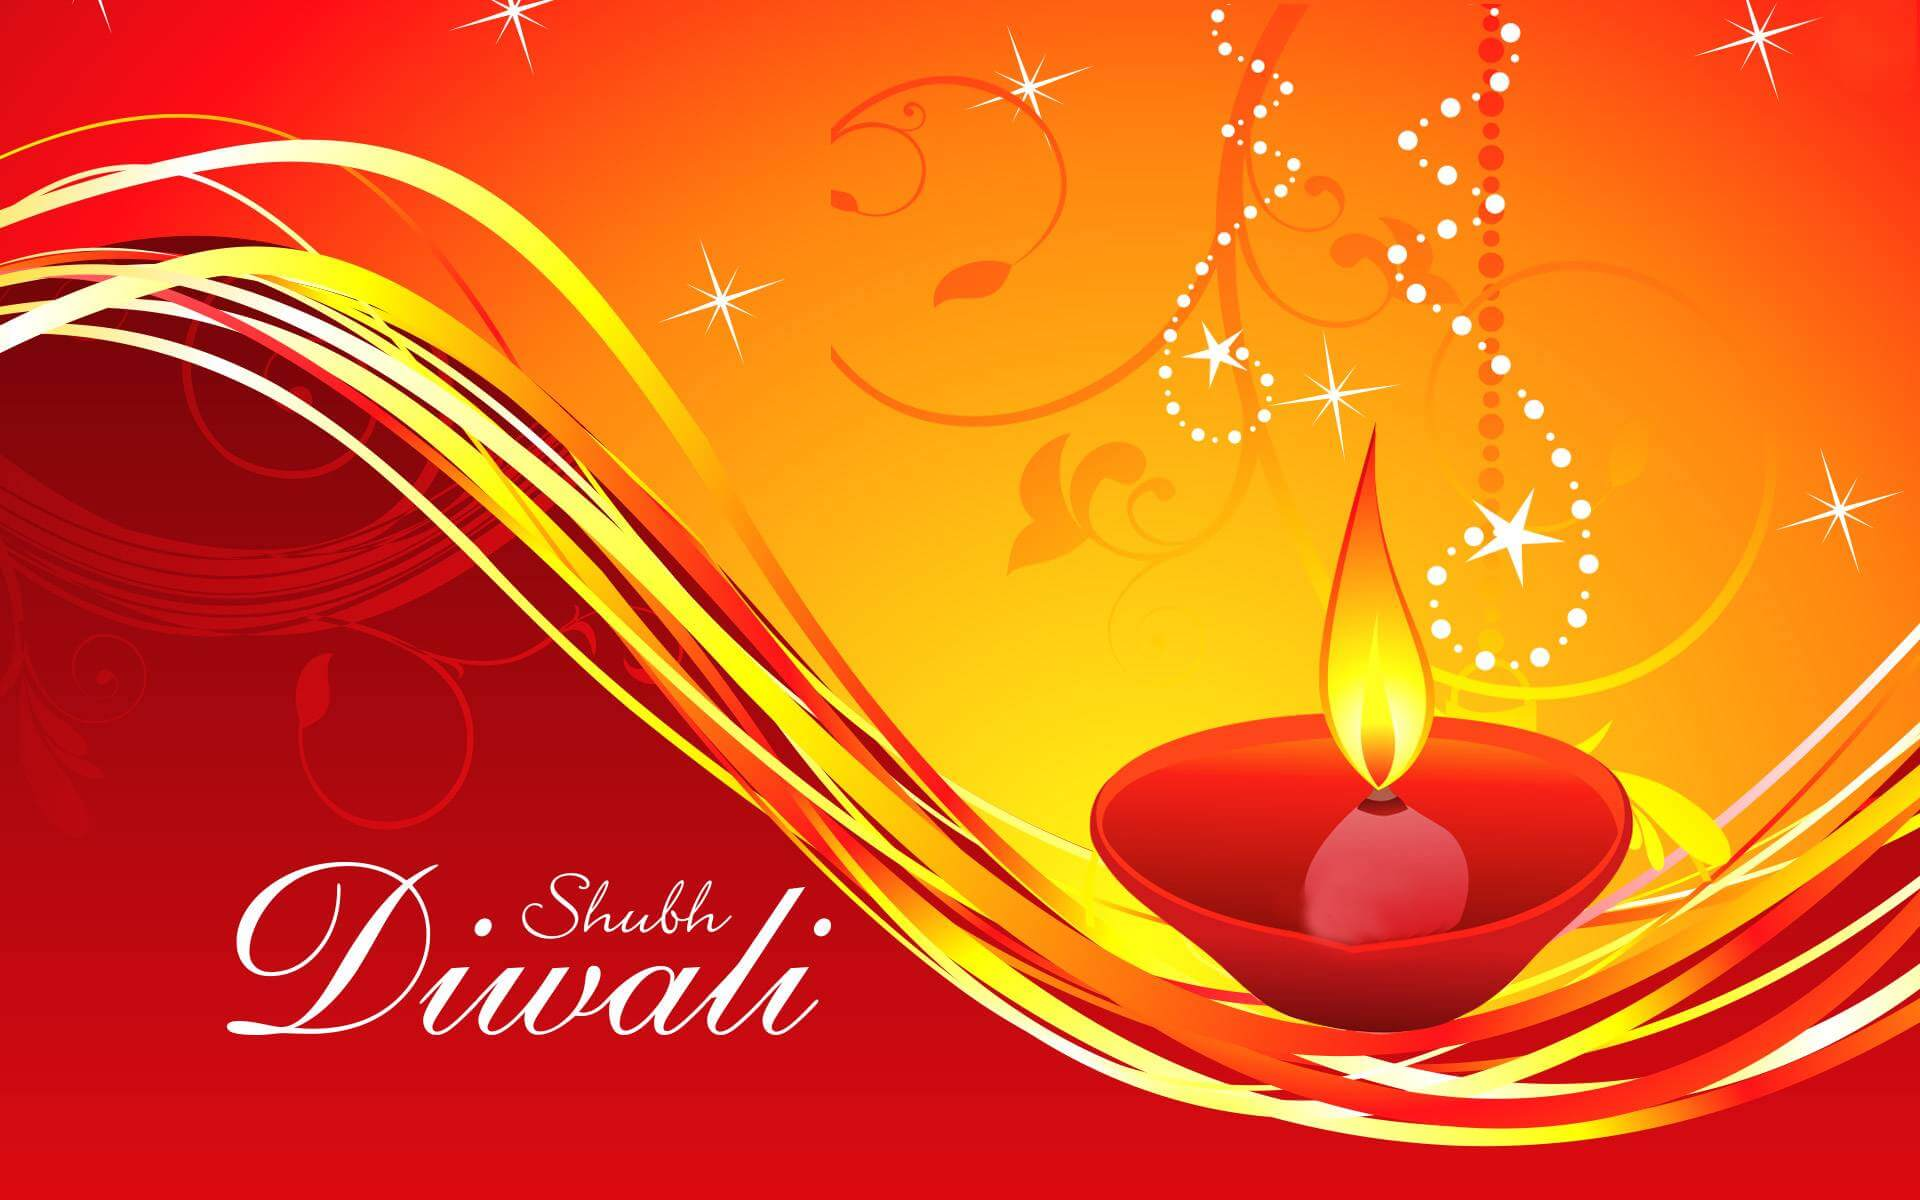 shubh diwali deepavali wishes best latest hd wallpaper